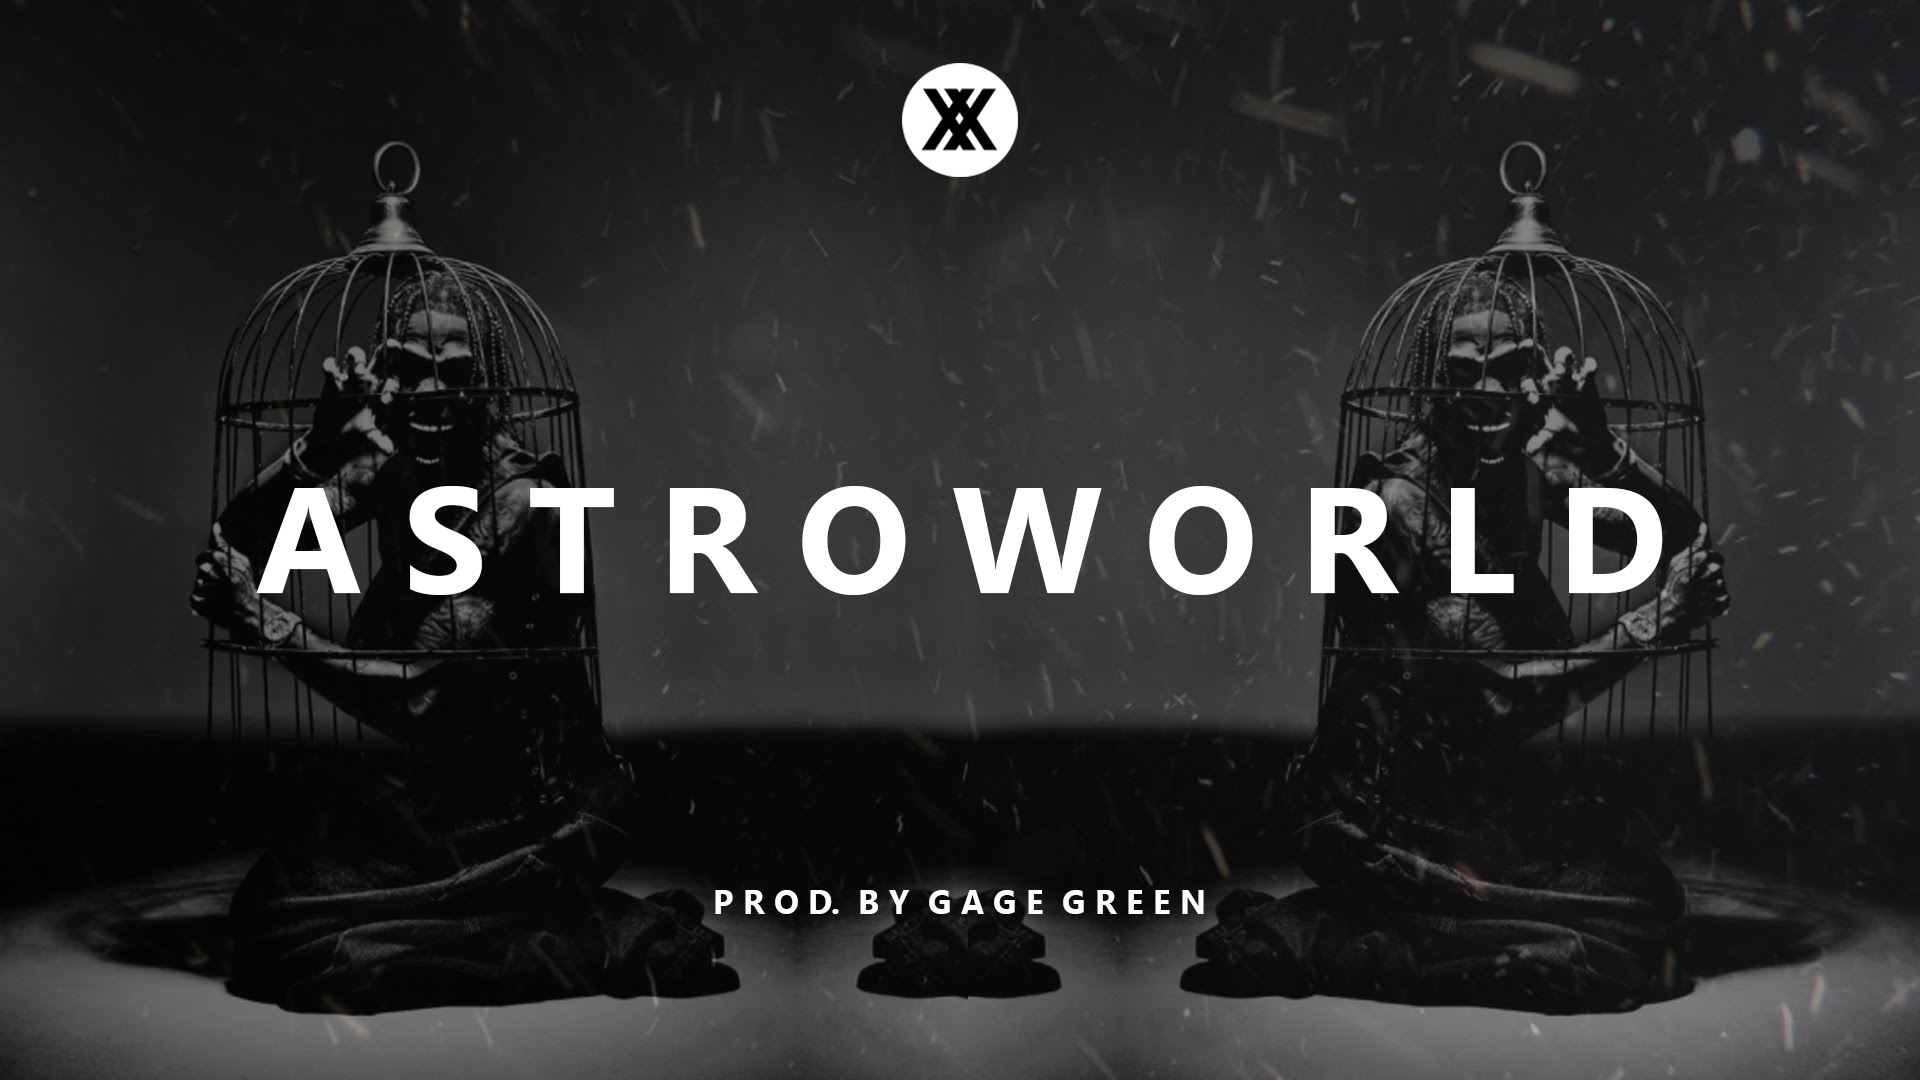 AstroWorld Monochrome Travis Scott 4172 Wallpapers and Stock 1920x1080